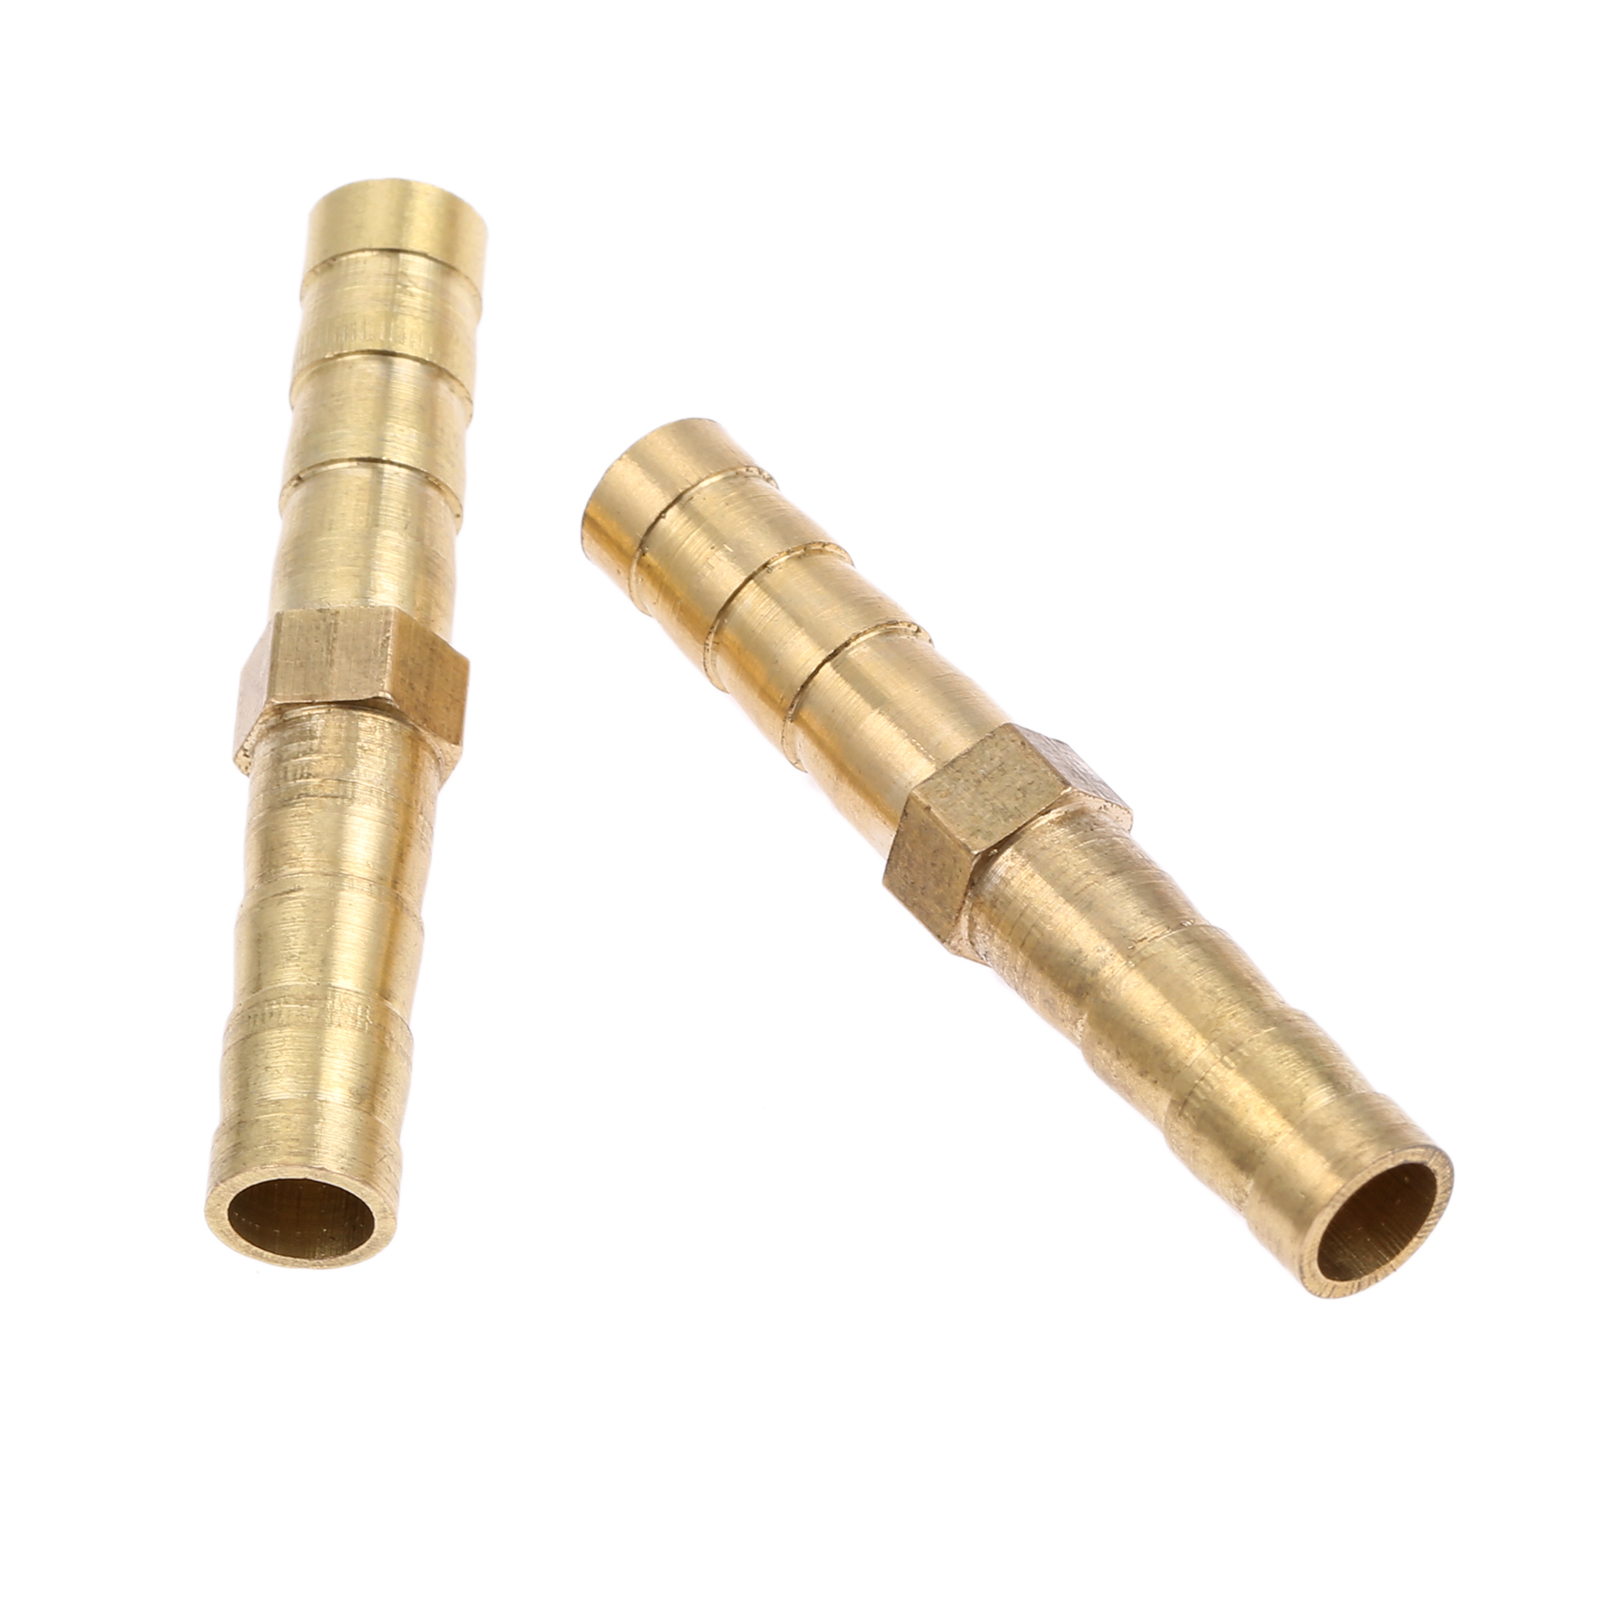 6mm Dia Air Straight Hose Pipe Barb Coupler Connector Brass Tone 6pcs